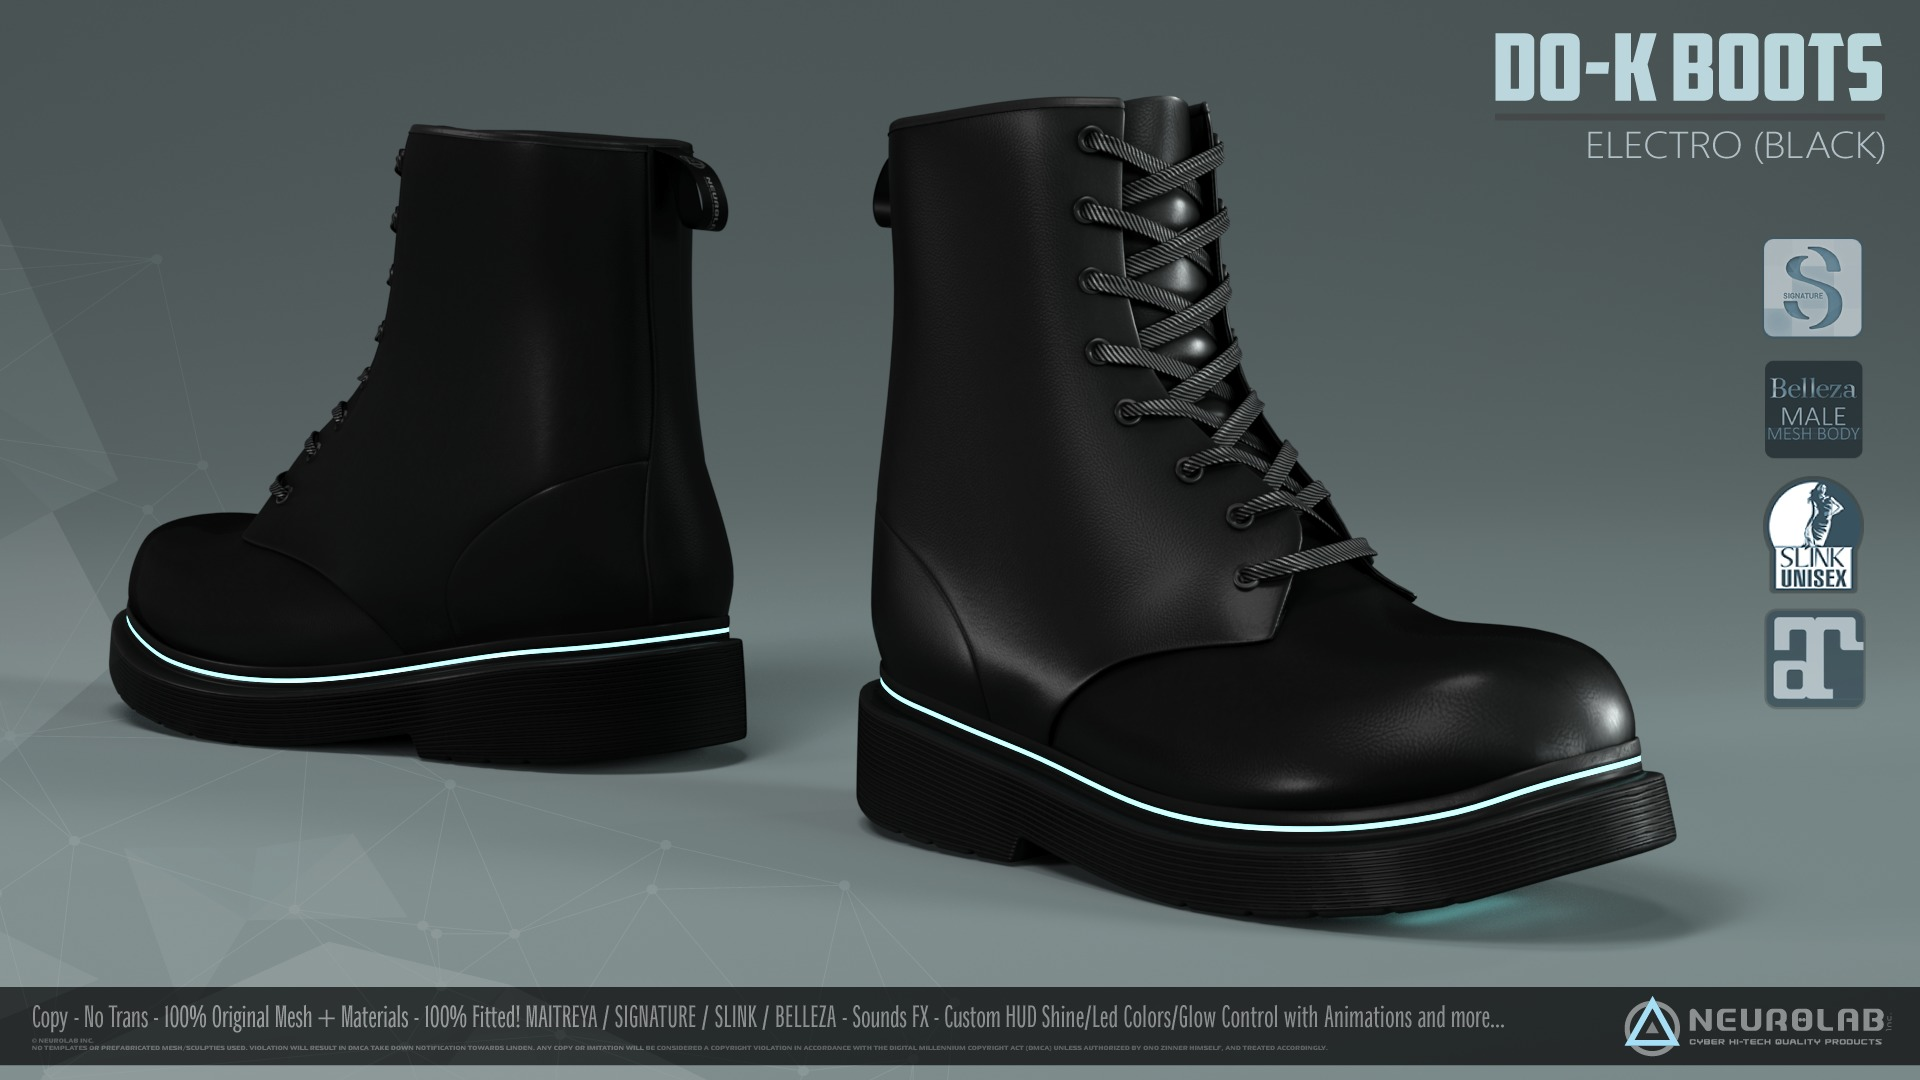 D0-K BOOTS (Electro Collection) *NEW*